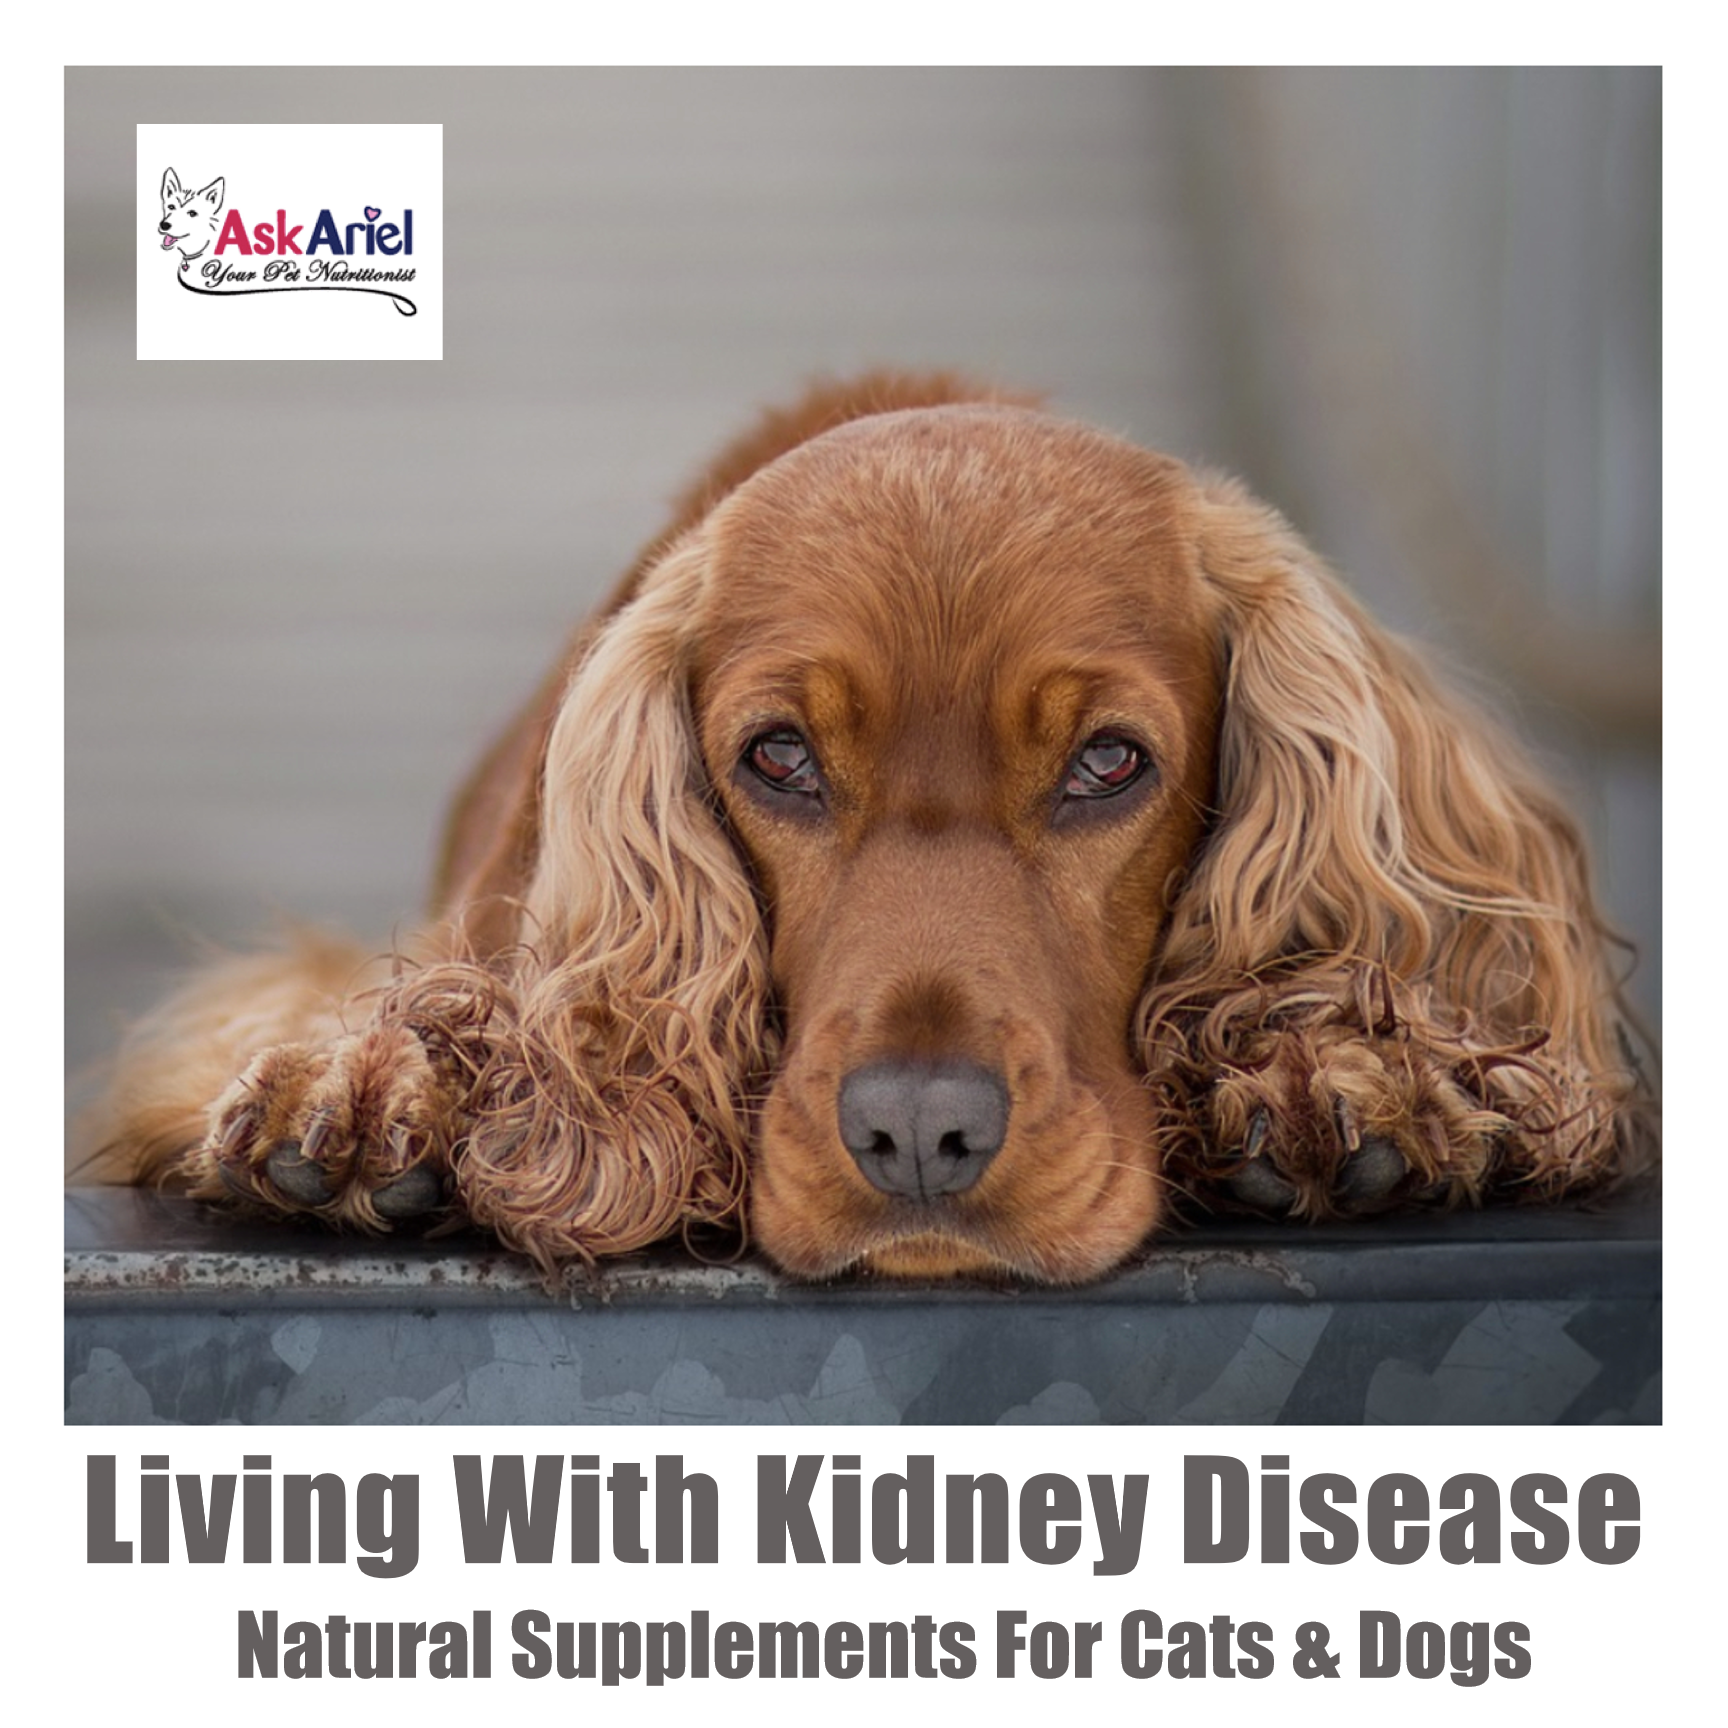 Kidney disease is more common in cats than dogs and often